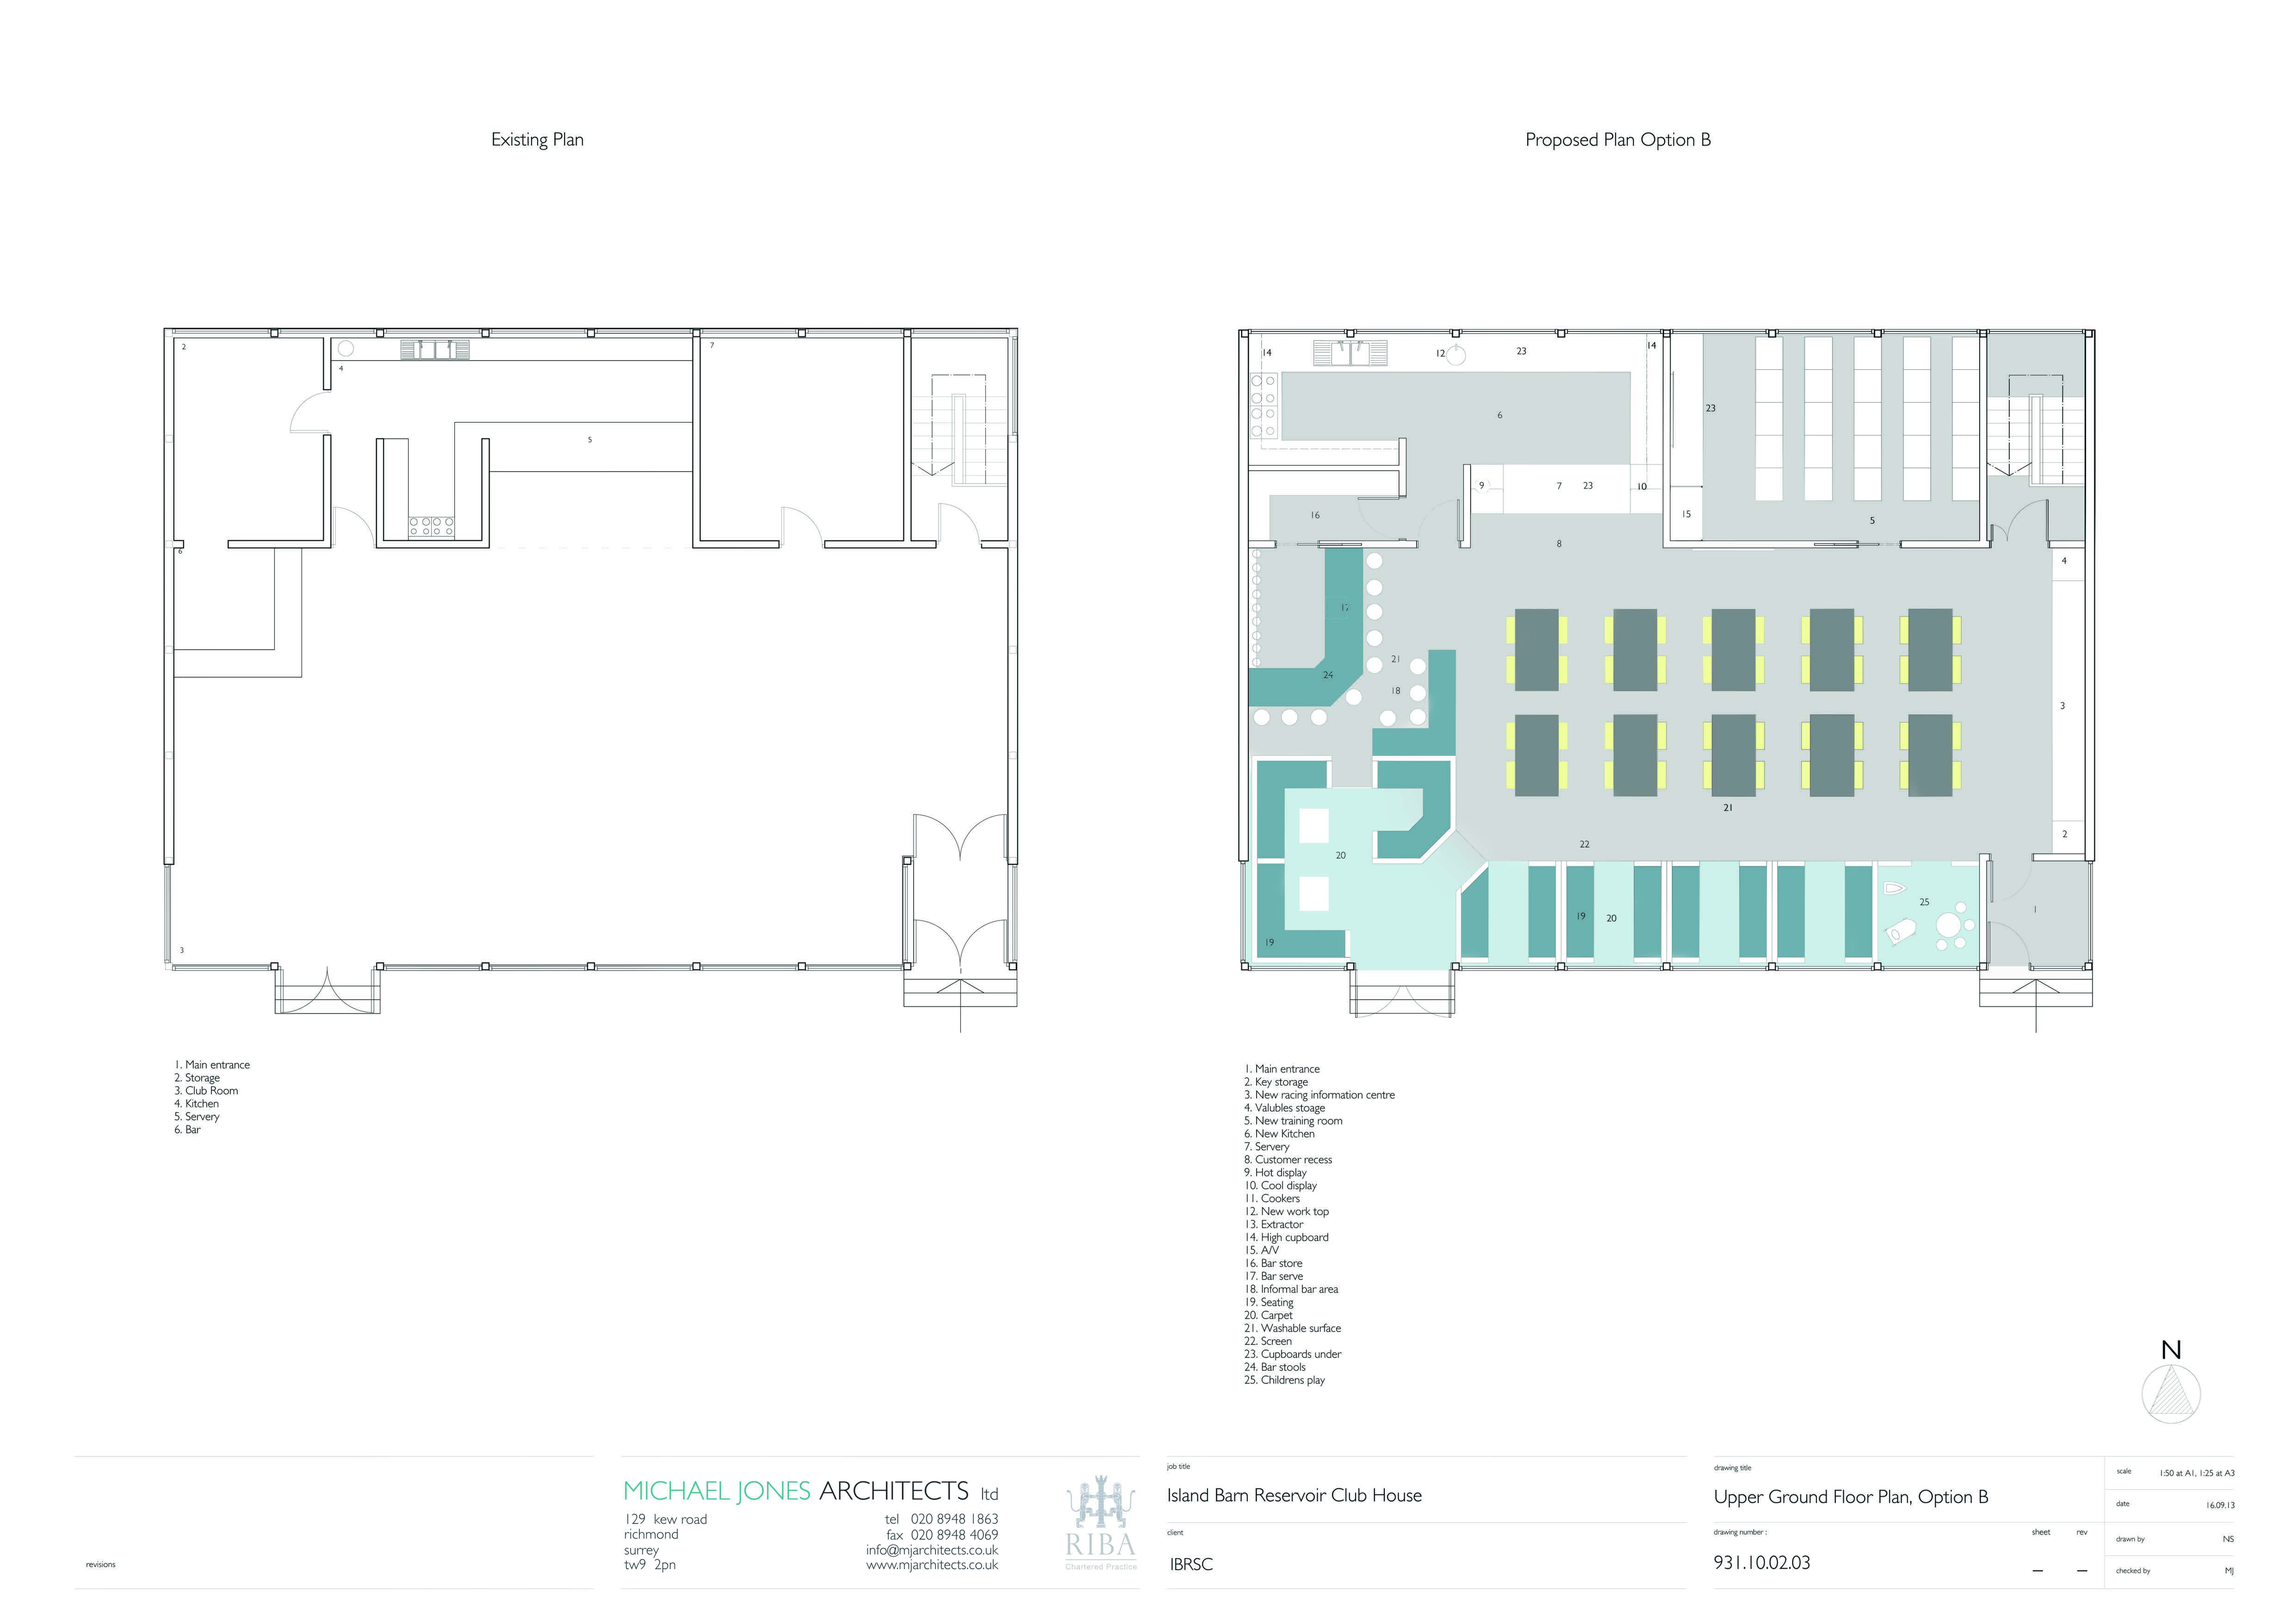 Clubhouse Upper Ground Floor Plan Option B